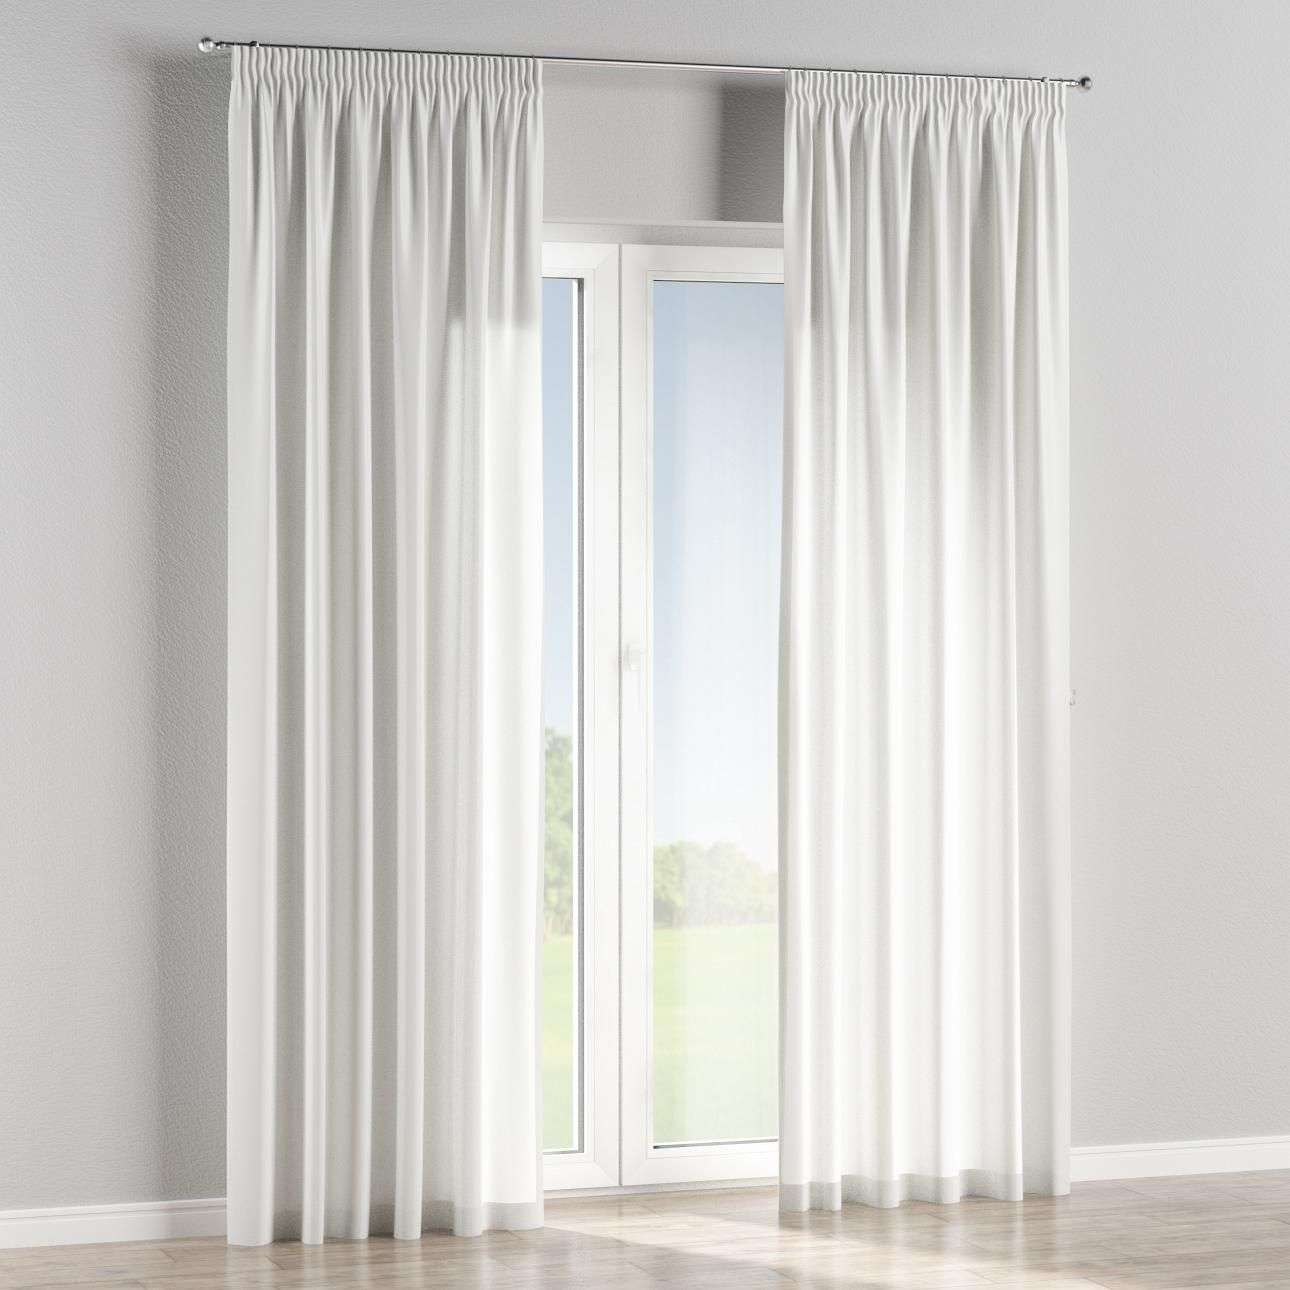 Pencil pleat curtains in collection Jupiter, fabric: 127-72